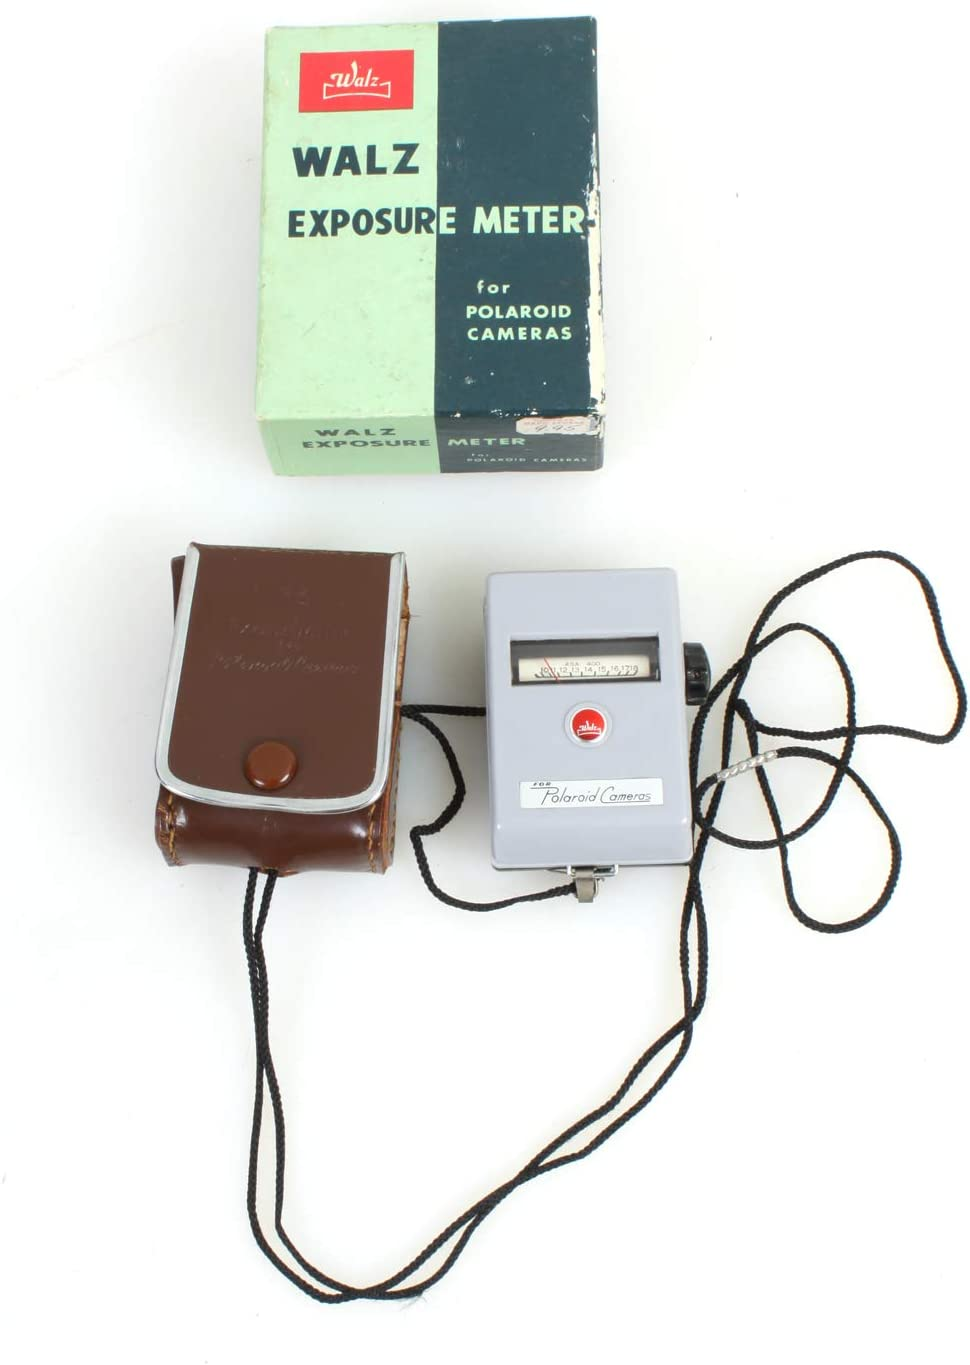 Vintage WALTZ Exposure Meter for Polaroid Pictures with Leather CASE and Box